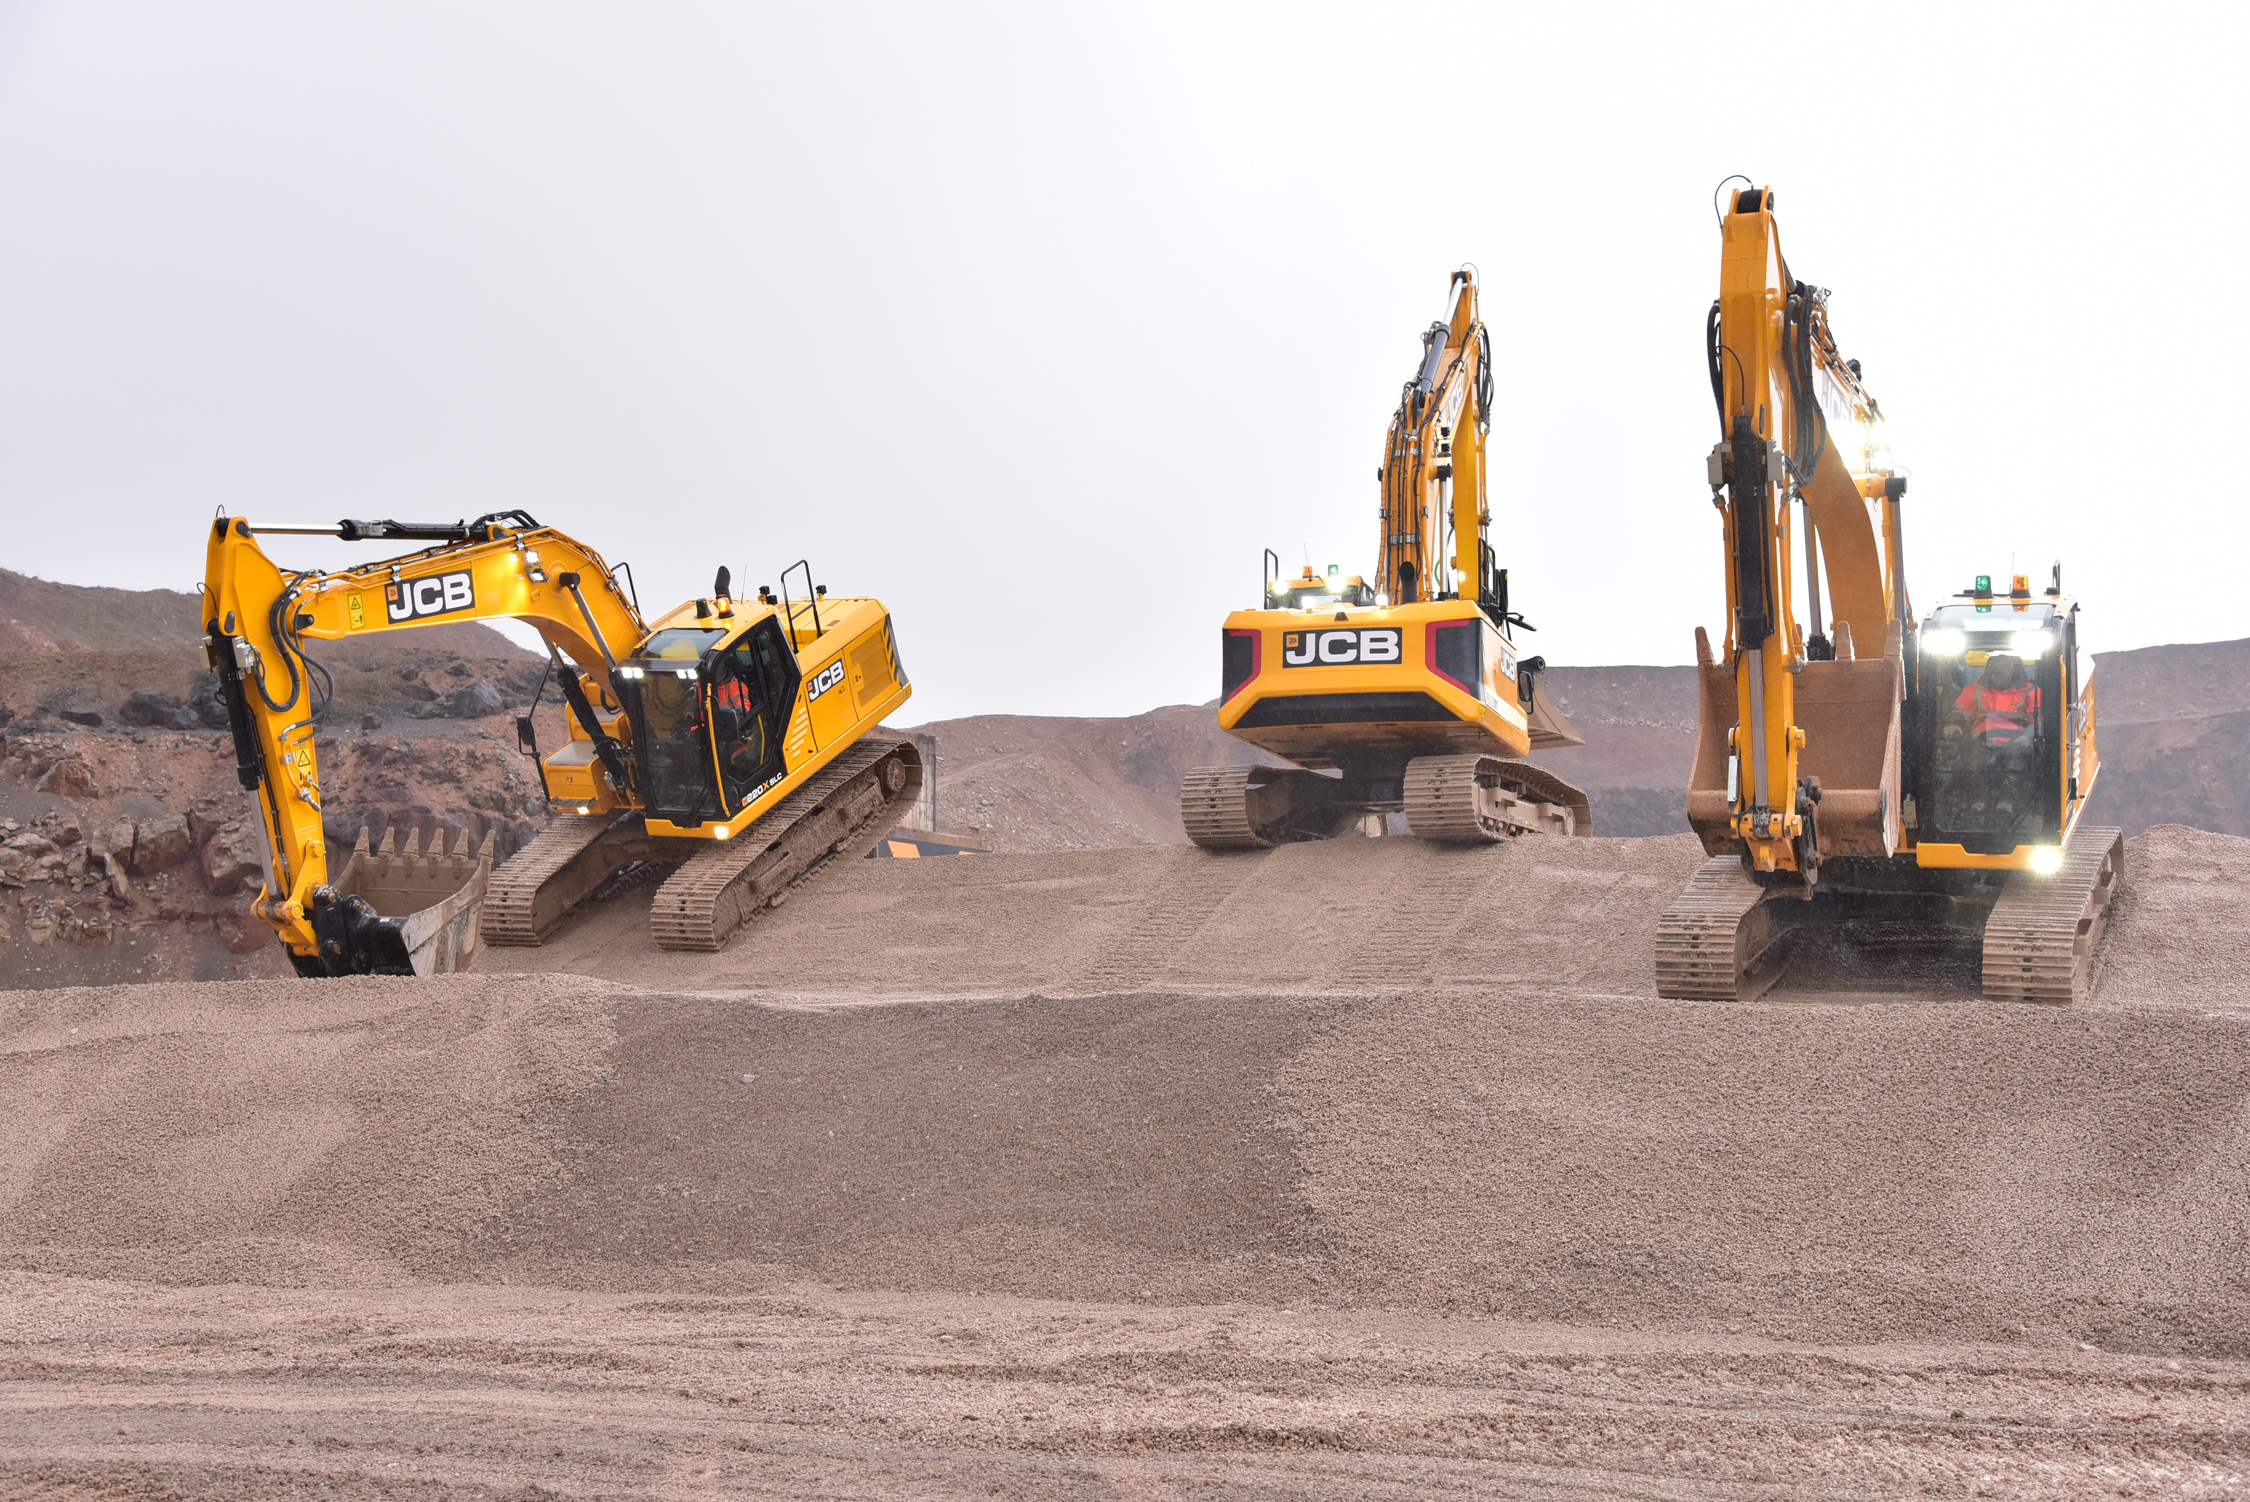 JCB focuses on operator in new excavators | Middle East Construction